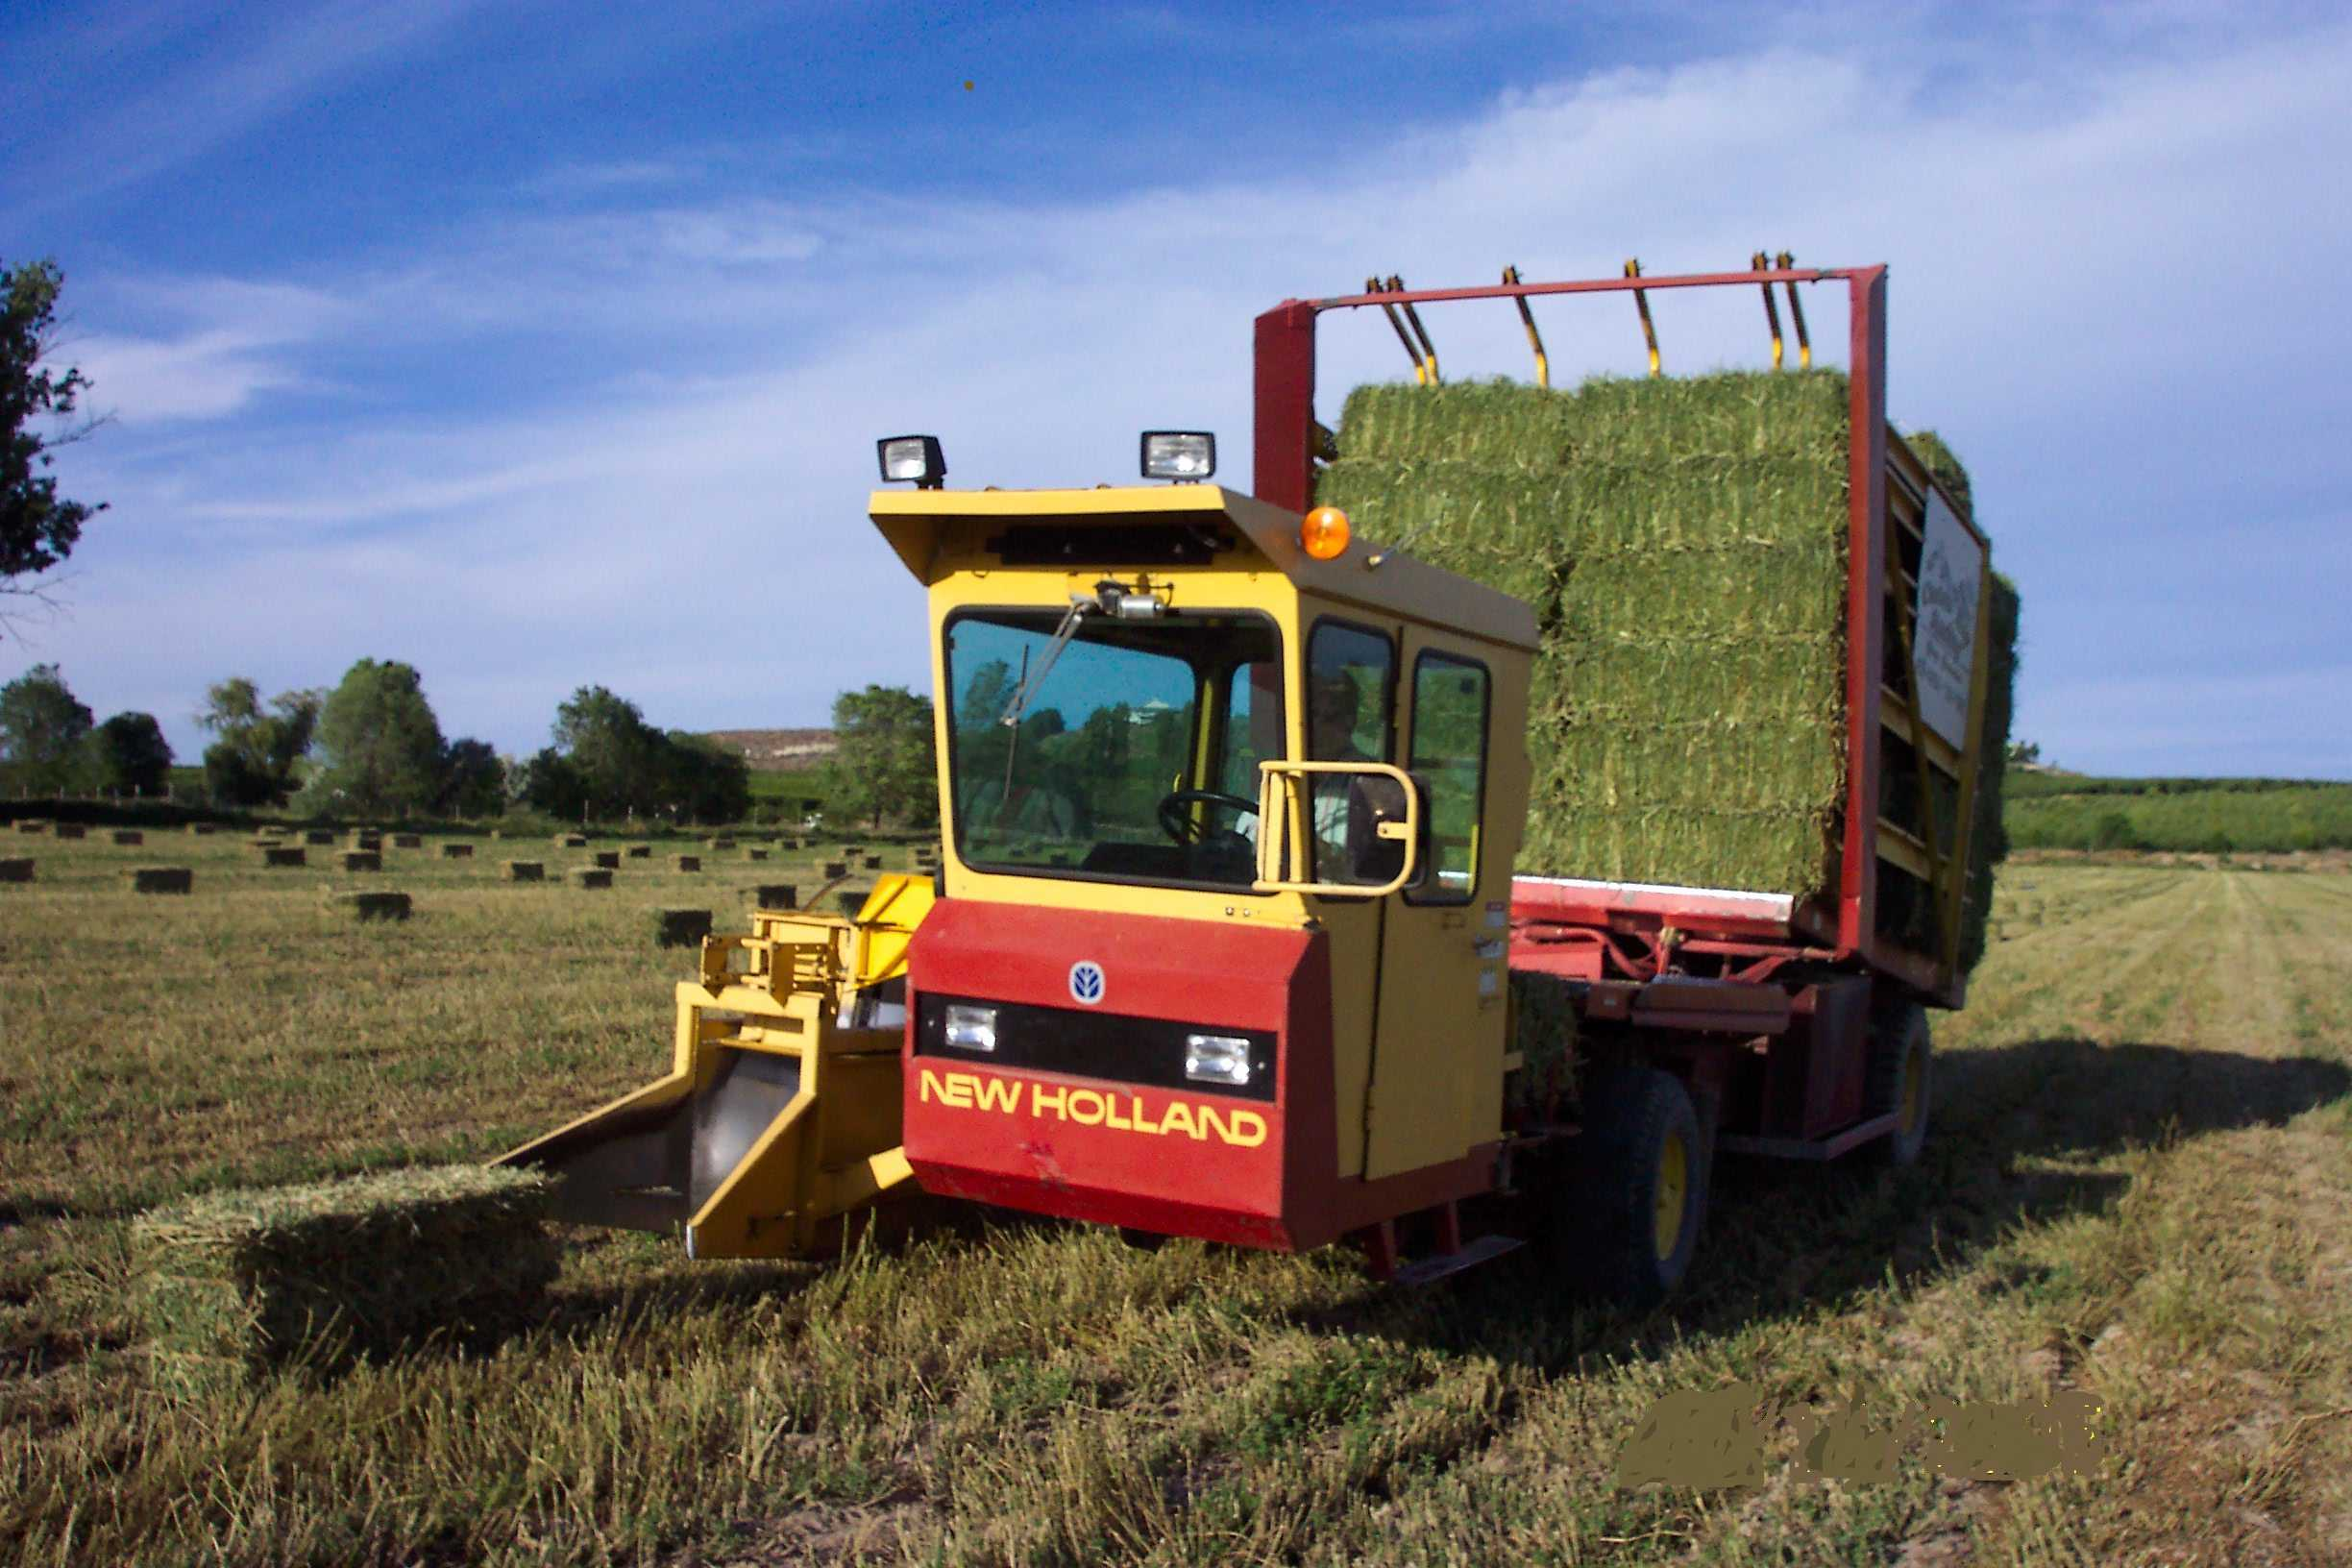 Jim Wilhite's New Holland Balewagons, by your Balewagon / Bale Wagon from  Jim